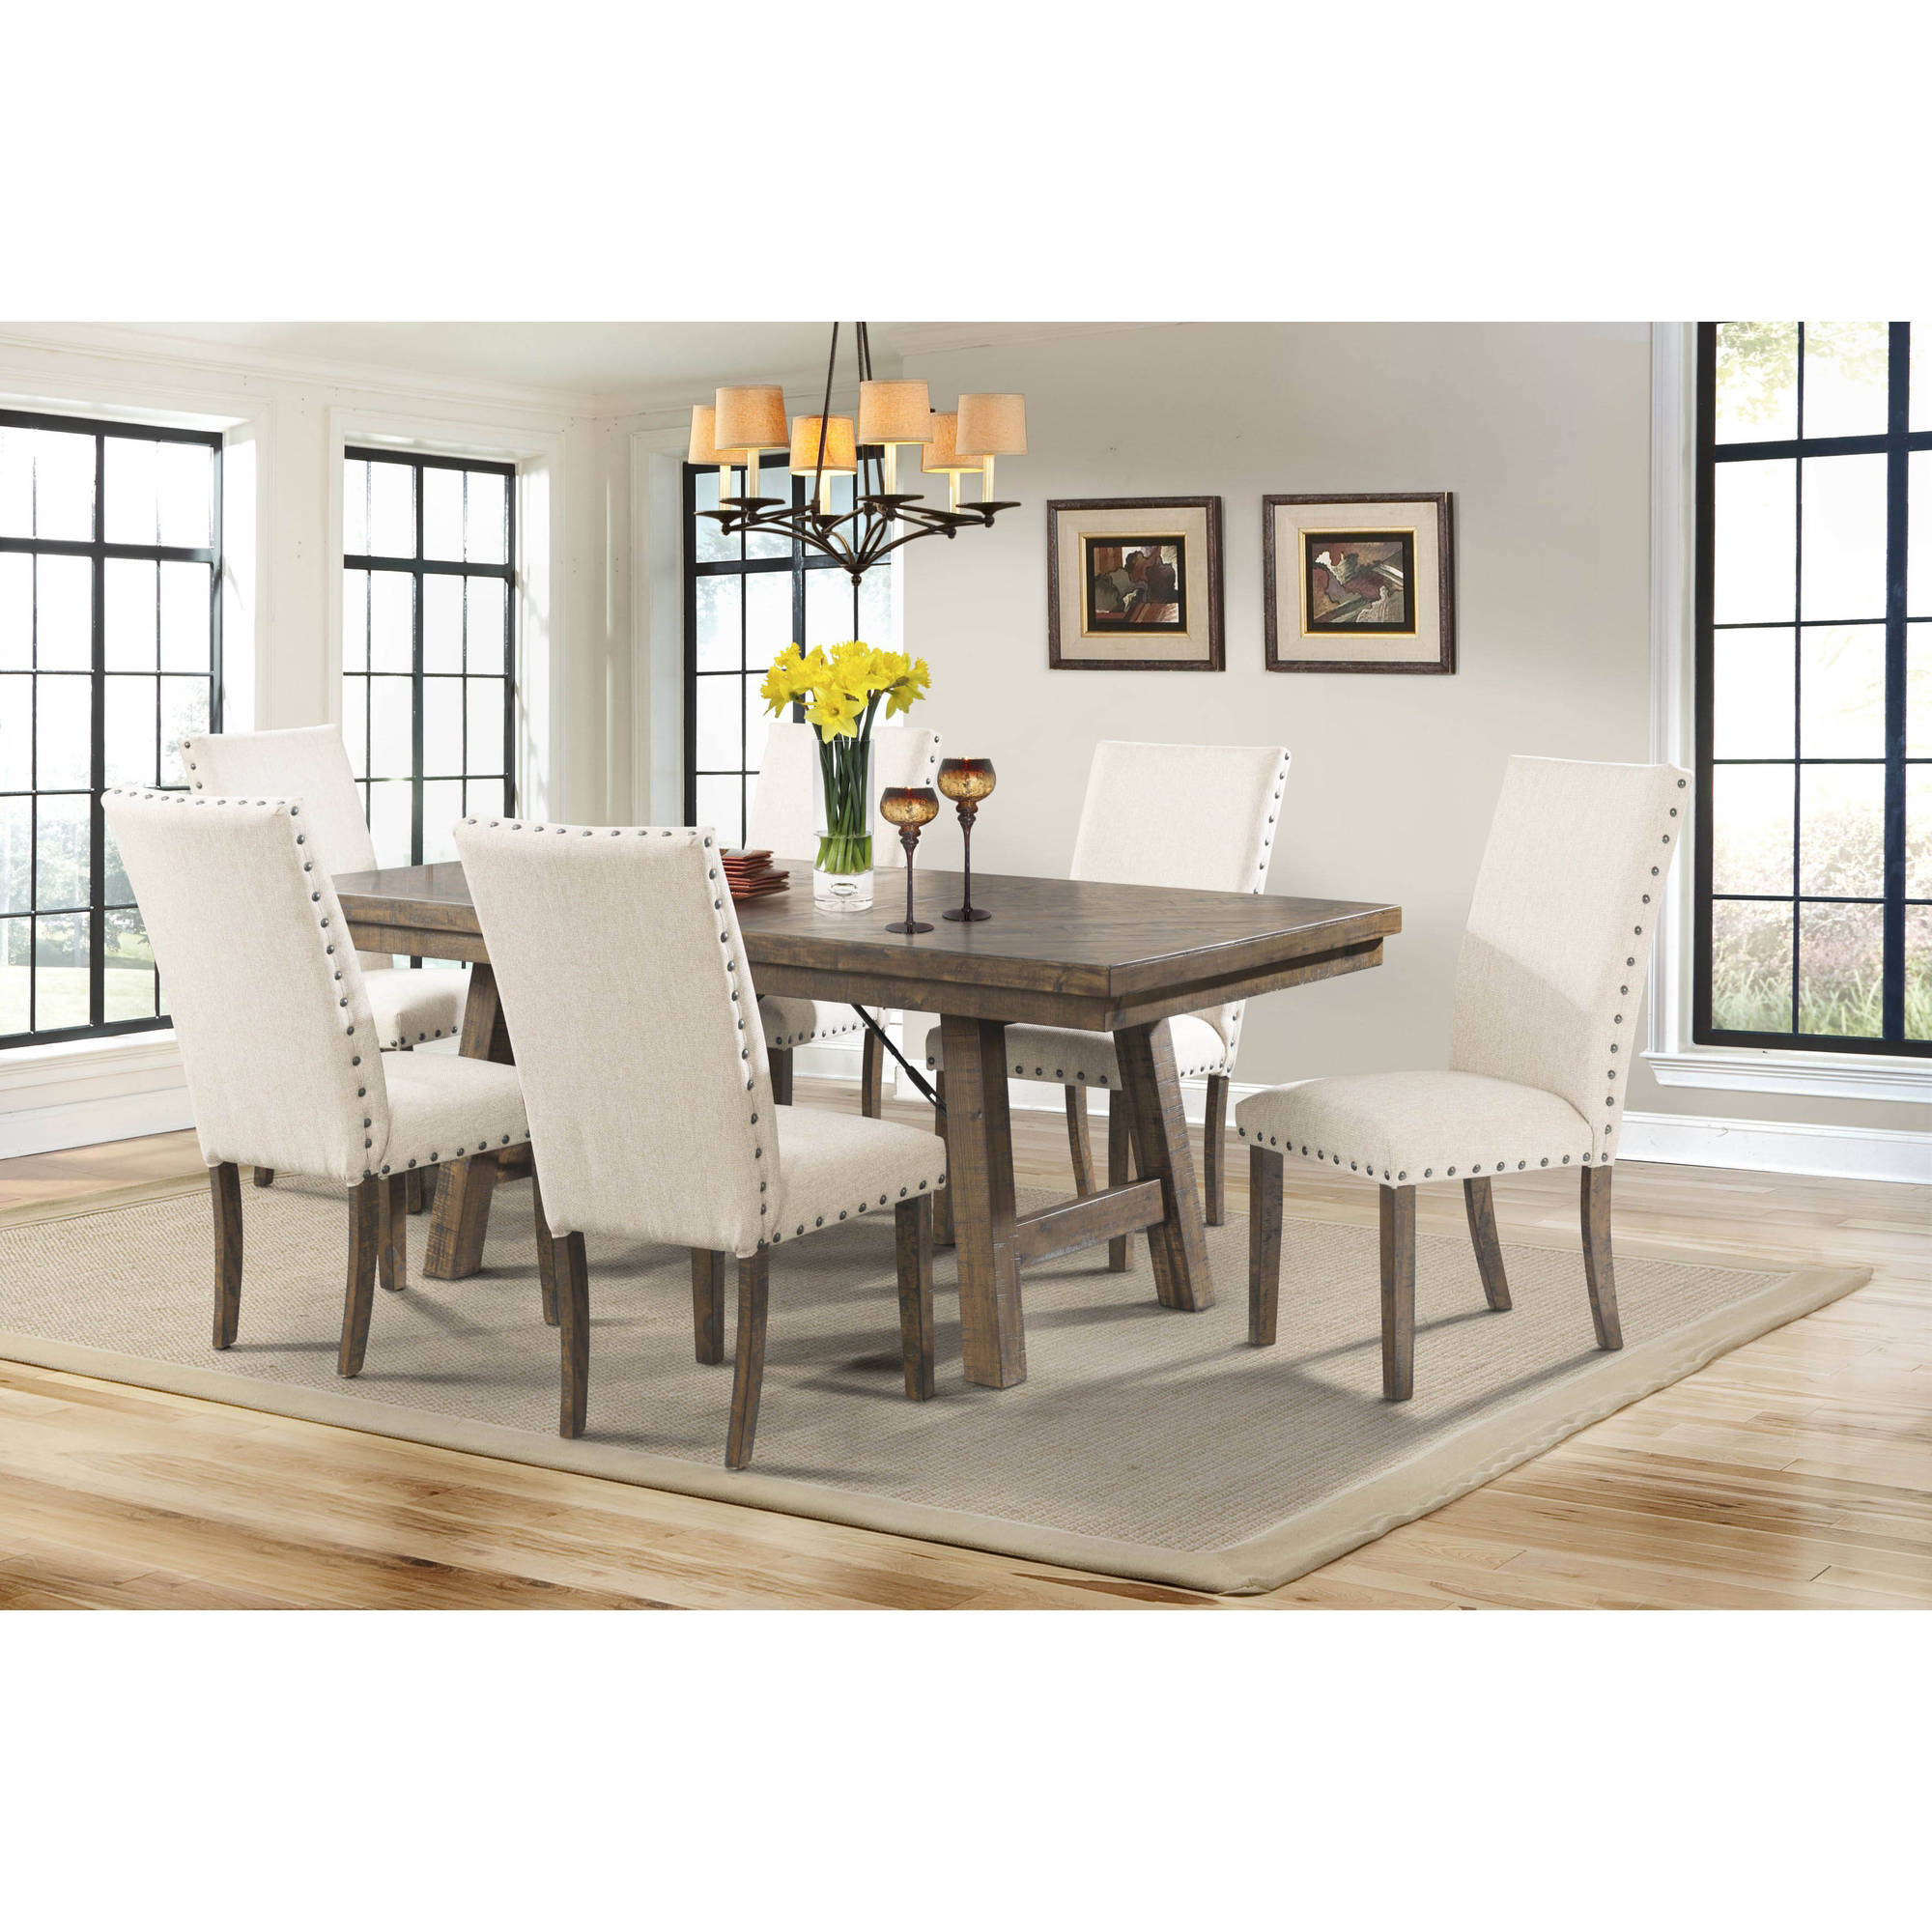 Picket House Furnishings Dex 7-Piece Dining Set-Table and 6 Upholstered Side Chairs